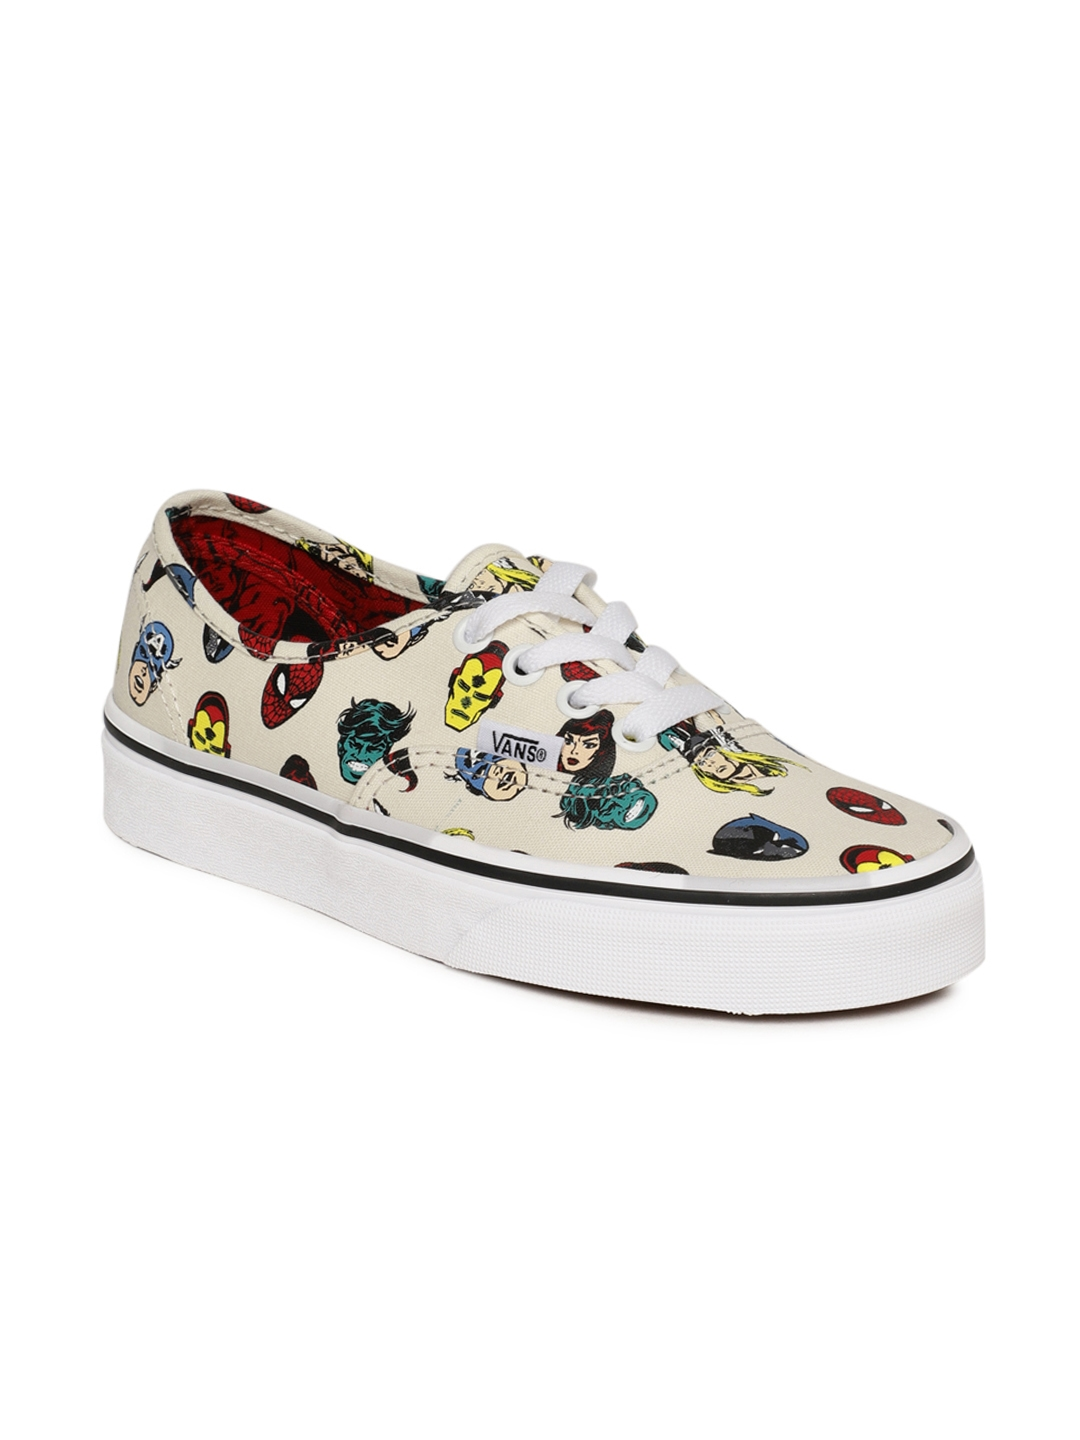 c0acd4145af324 Buy Vans Unisex Off White Marvel Avengers Printed Authentic Sneakers ...